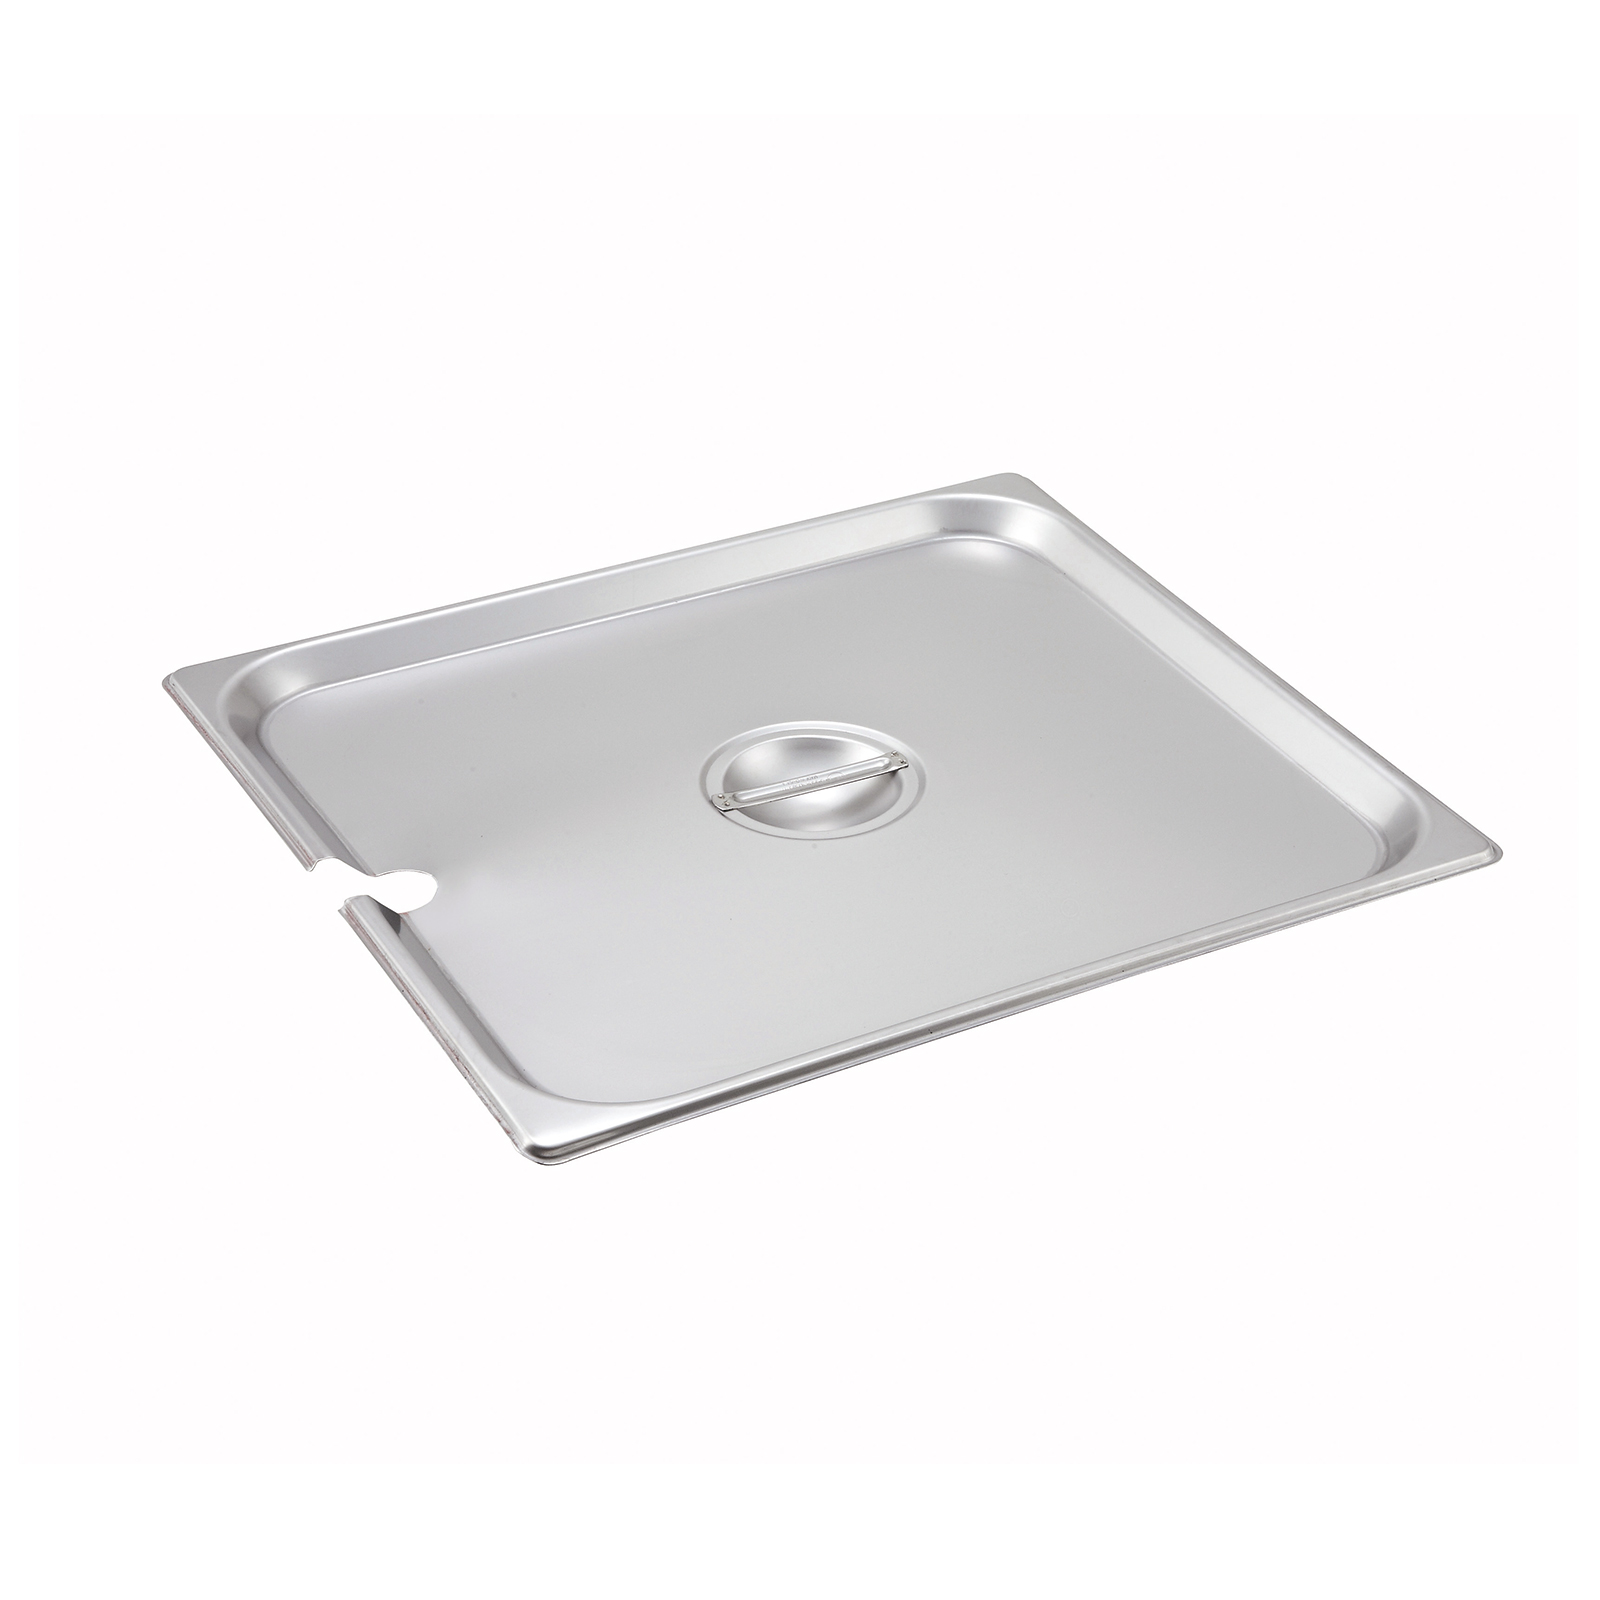 Winco SPCTT steam table pan cover, stainless steel